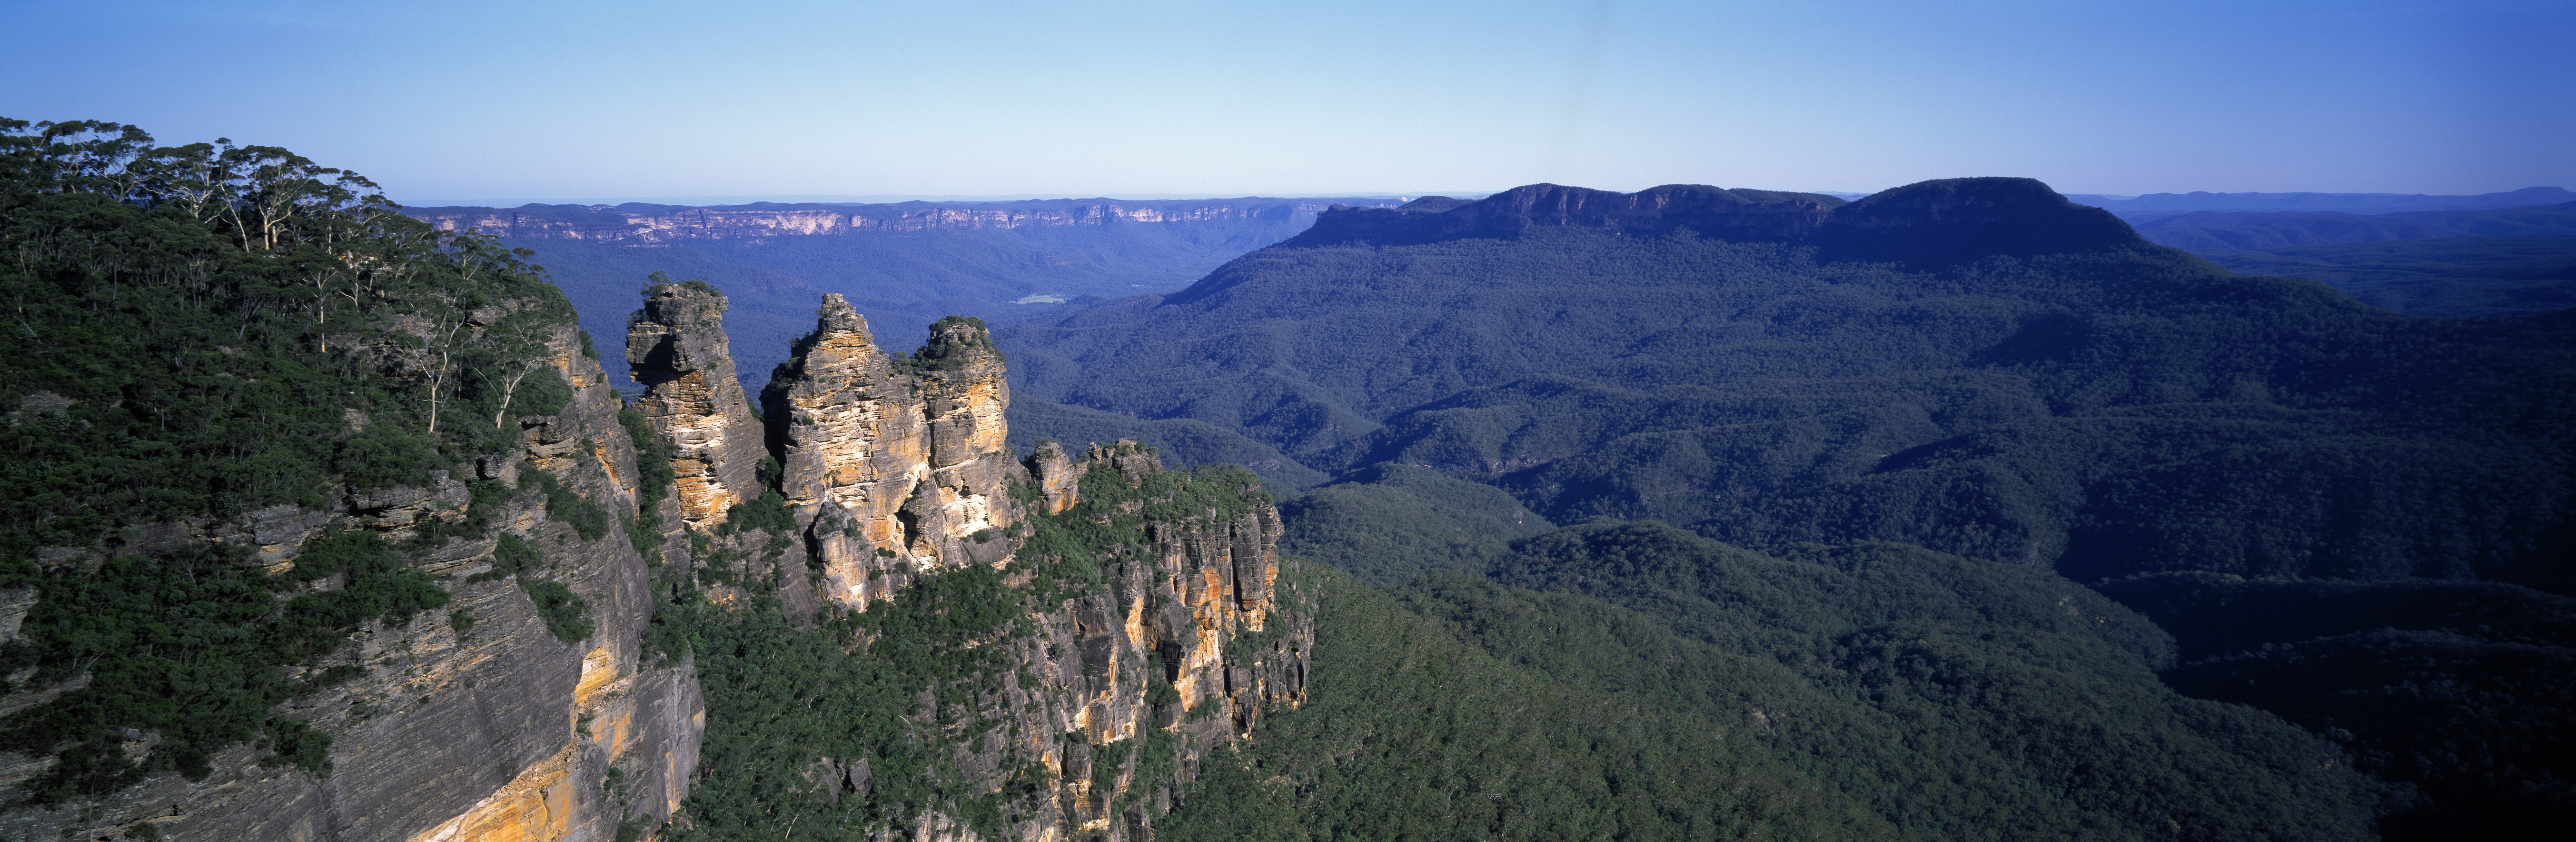 Blue Mountains Three Sisters New South Wales